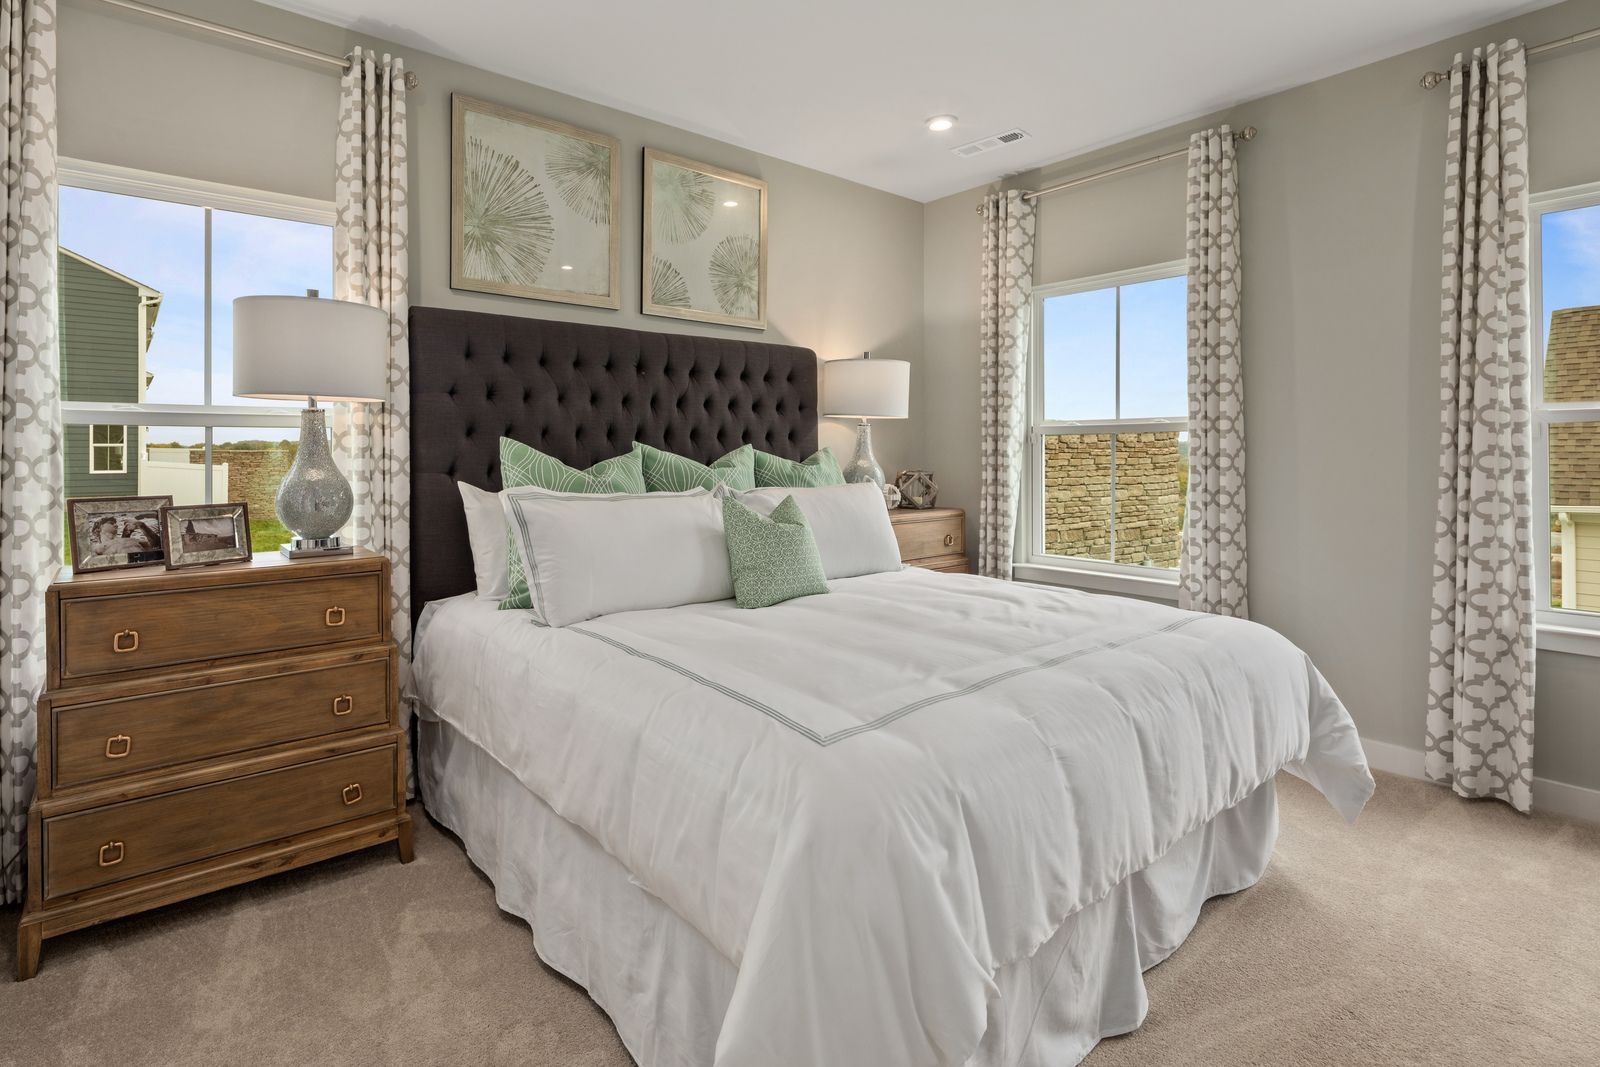 Bedroom featured in the Calvert Basement By Ryan Homes in Washington, MD